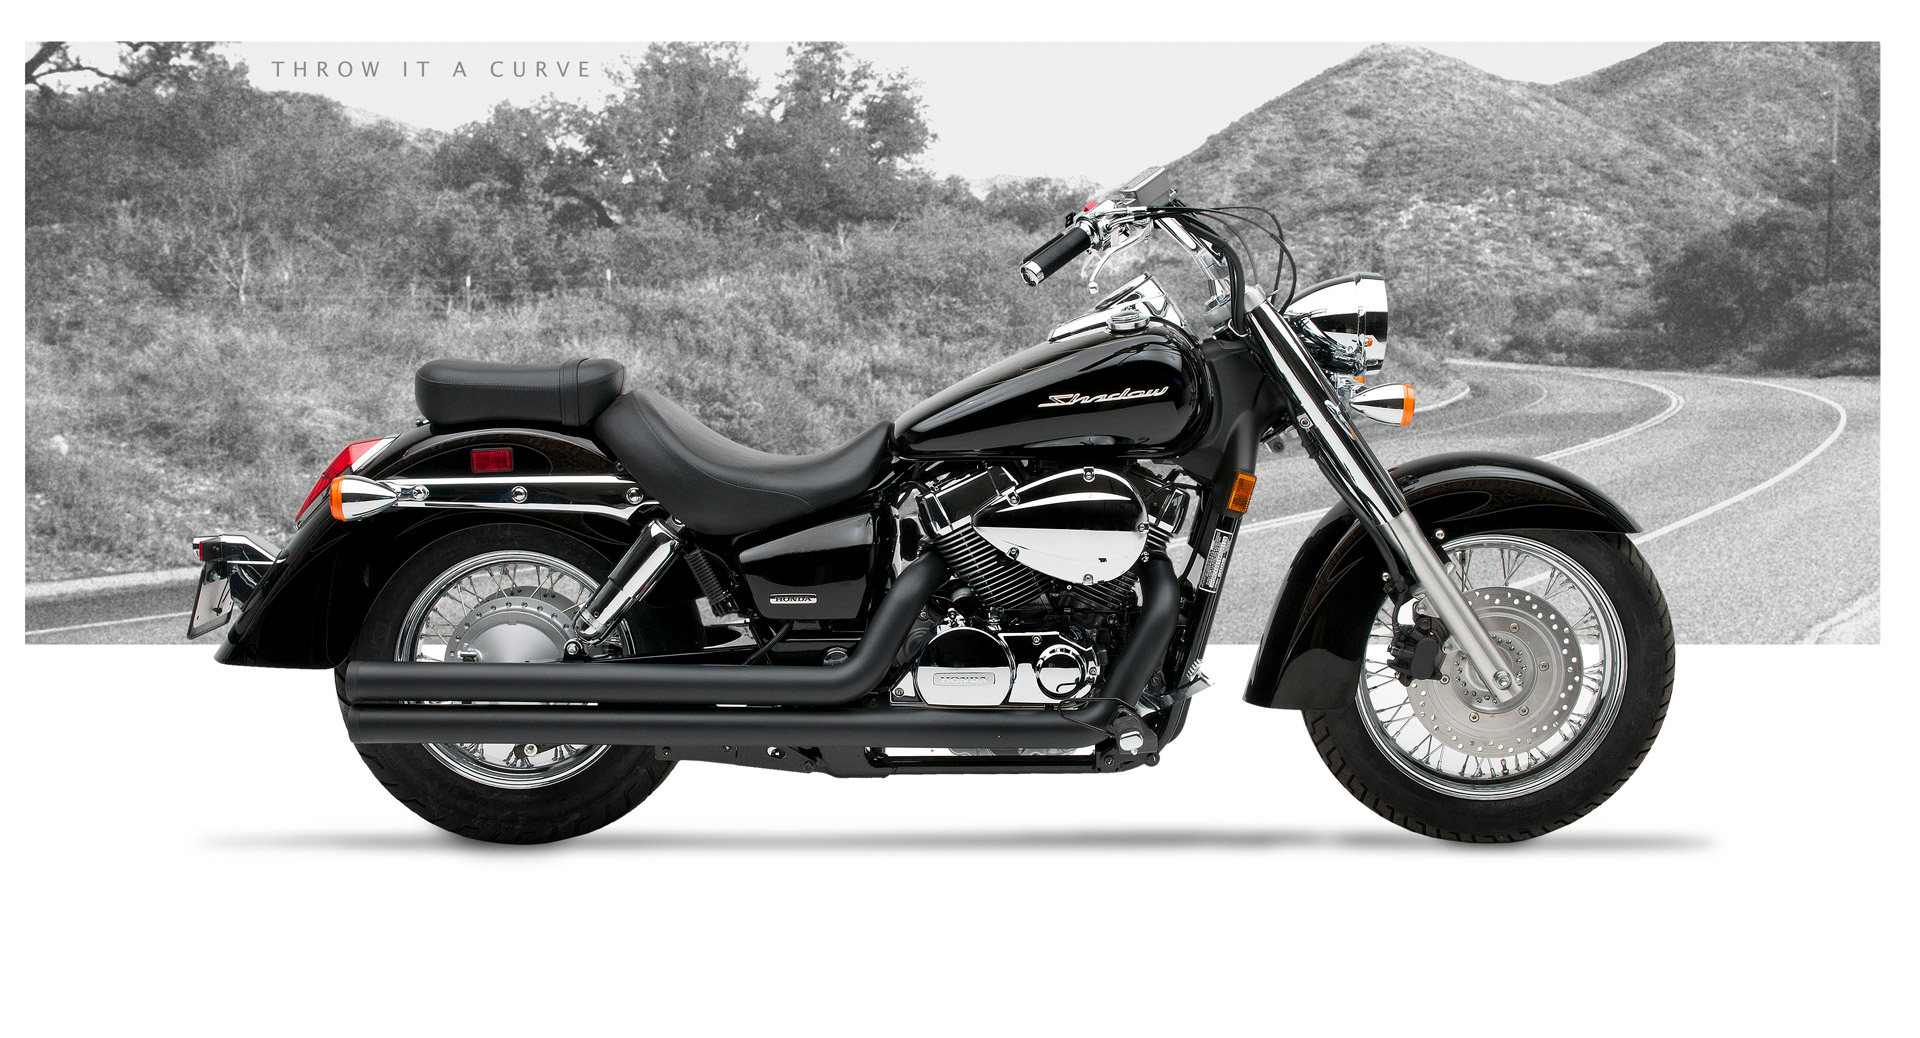 Honda Shadow Aero 750 Motorcycle Exhaust American Classic Ii Black Ceramic Hard Krome